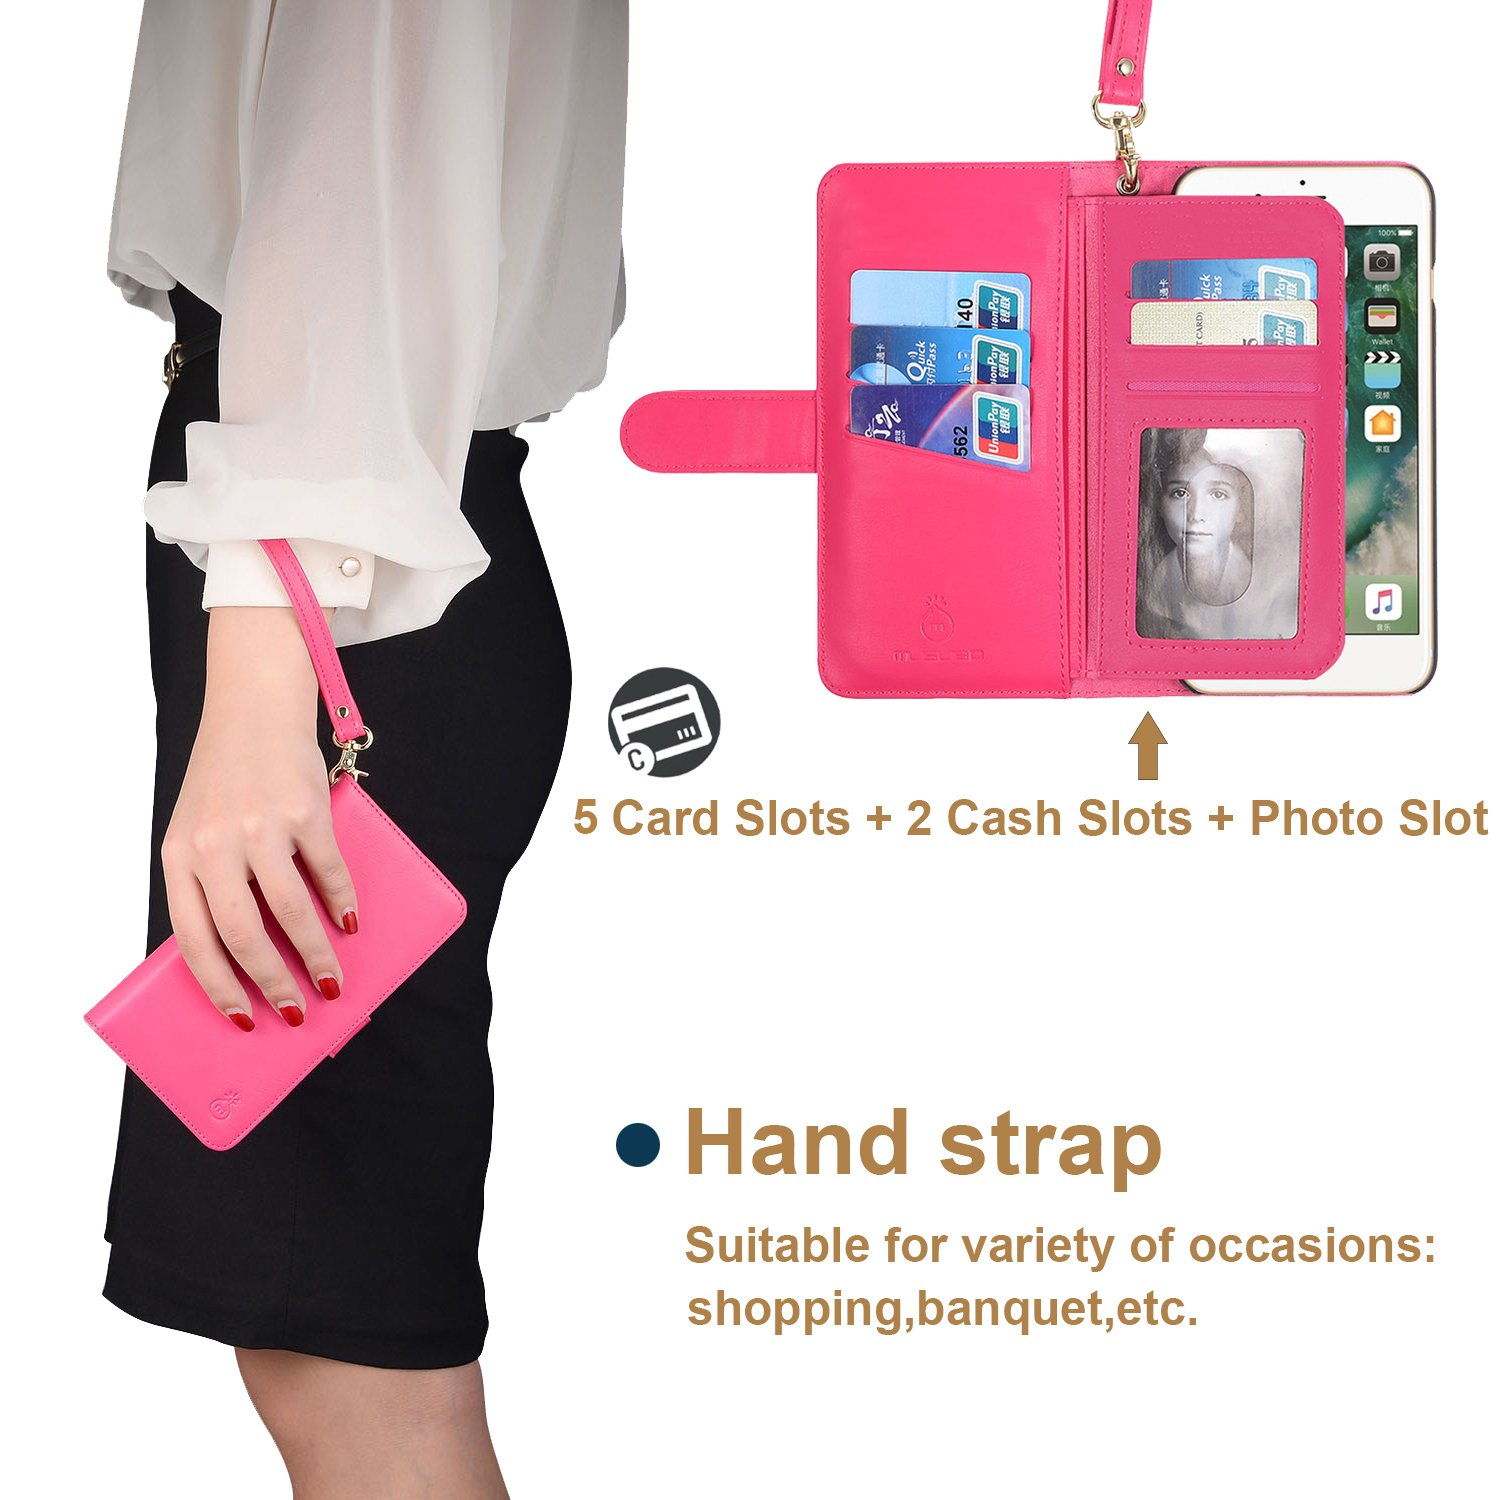 2 in 1 iPhone 7 iPhone 8 Case Wallet Folio Flip PU Leather Case Magnetic Detachable Inner Shell and Slim Back Cover Card Holder Slot Wrist Strap for iPhone 7 iPhone 8 4.7 inch (Hot Pink-7/8)